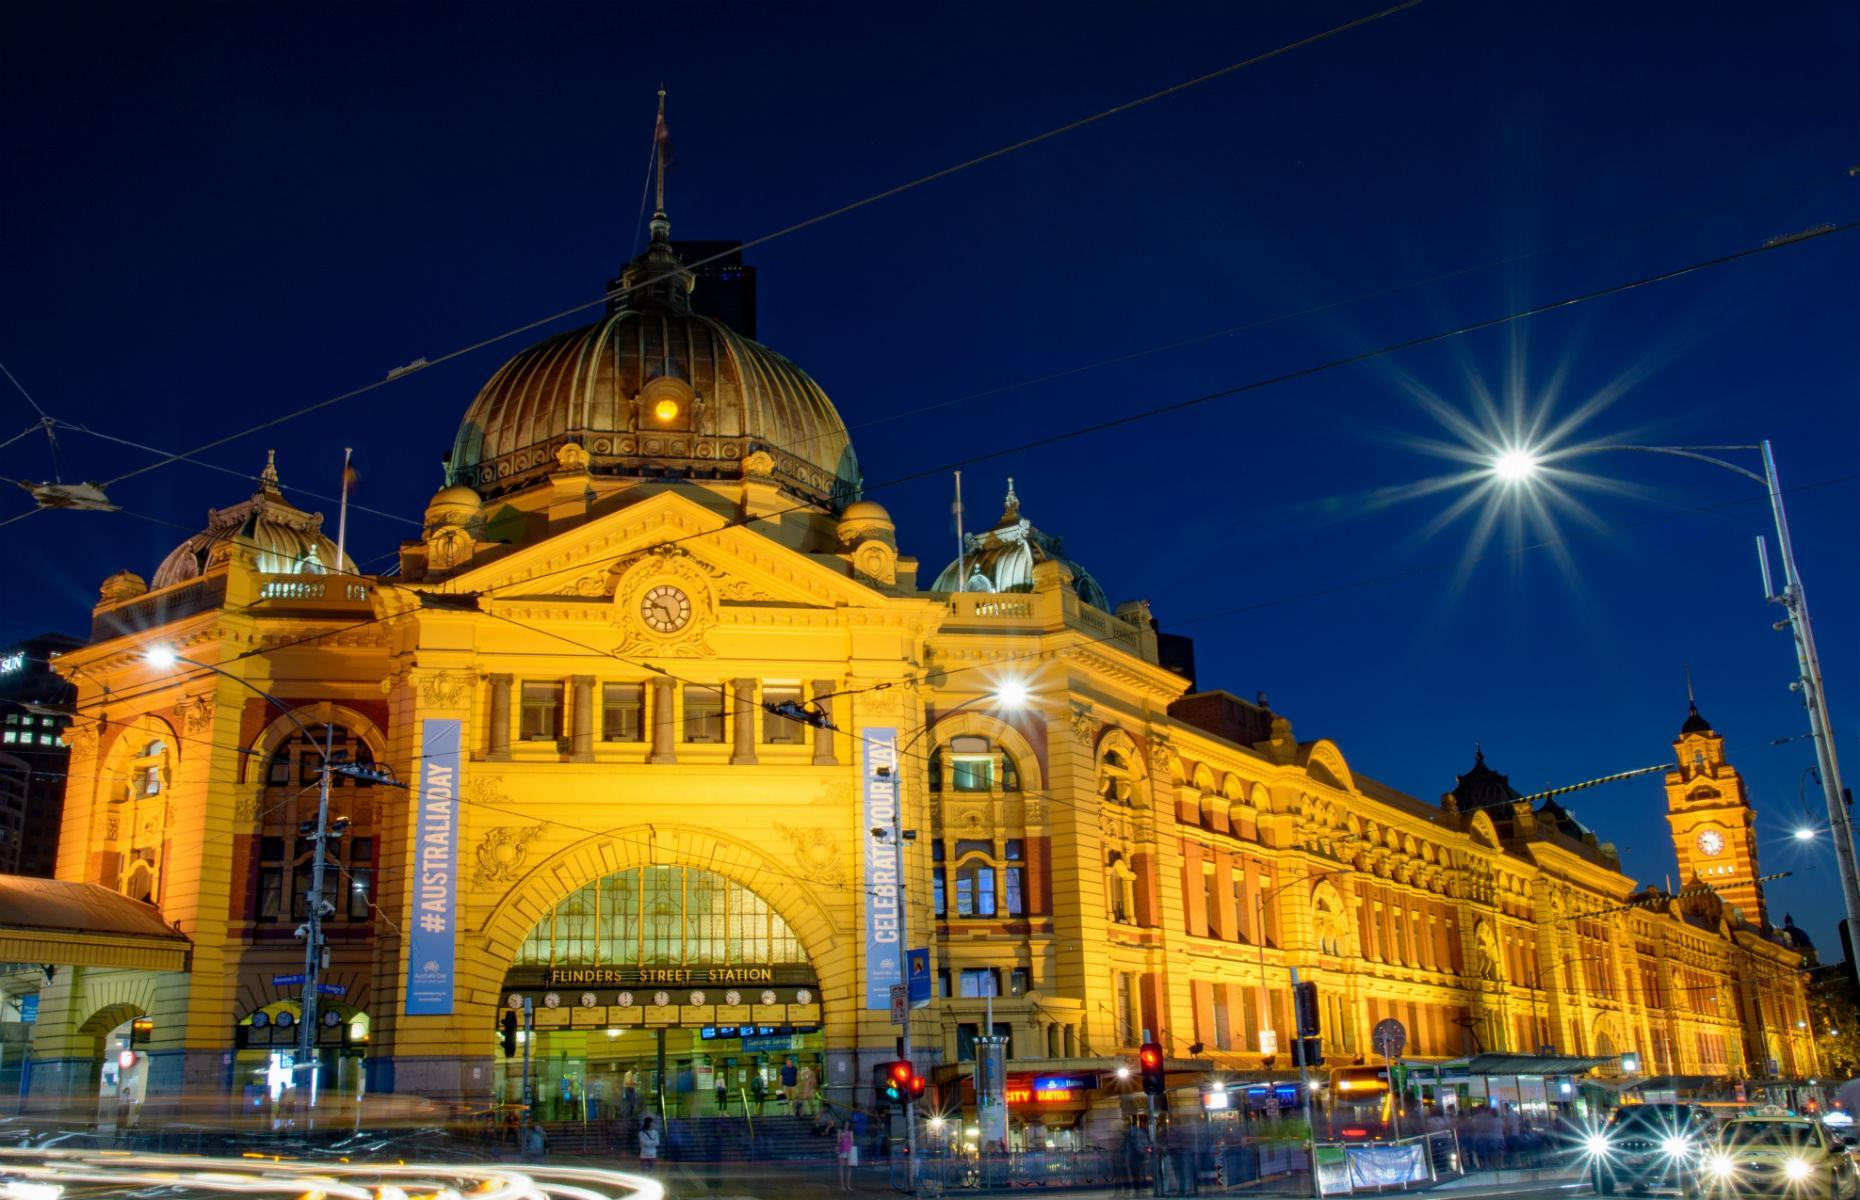 Slide 28 of 45: Melbourne's Flinders Street Station is one of the city's most beloved buildings. The first railway station built in an Australian city, the terminal has appeared in a number of movies and is well-known for the old-fashioned clocks displaying train departure times on its façade.